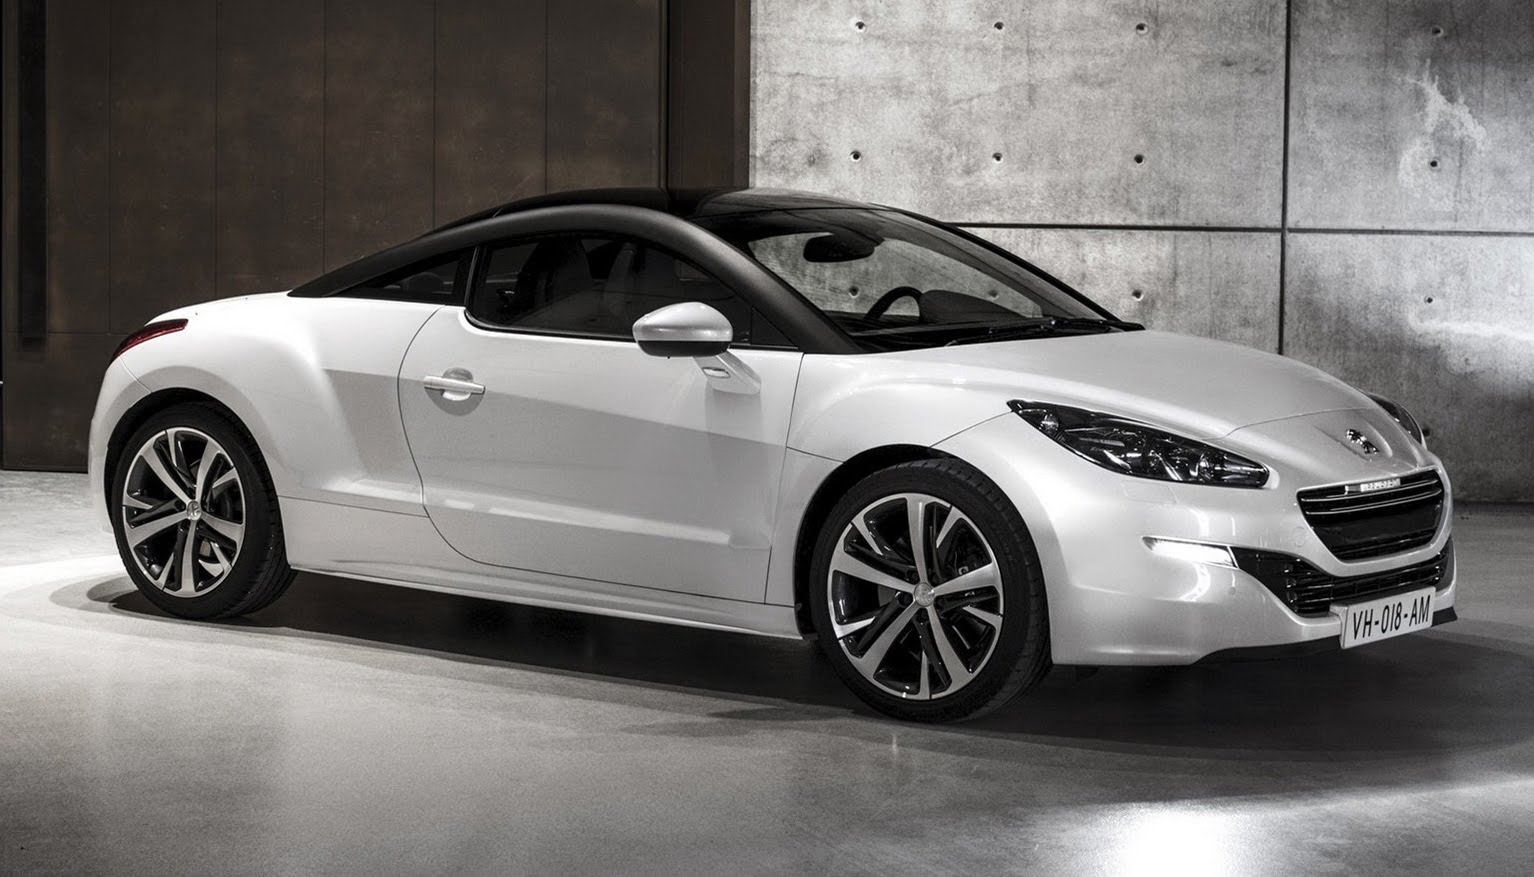 Pictures of peugeot rcz 2014 #6